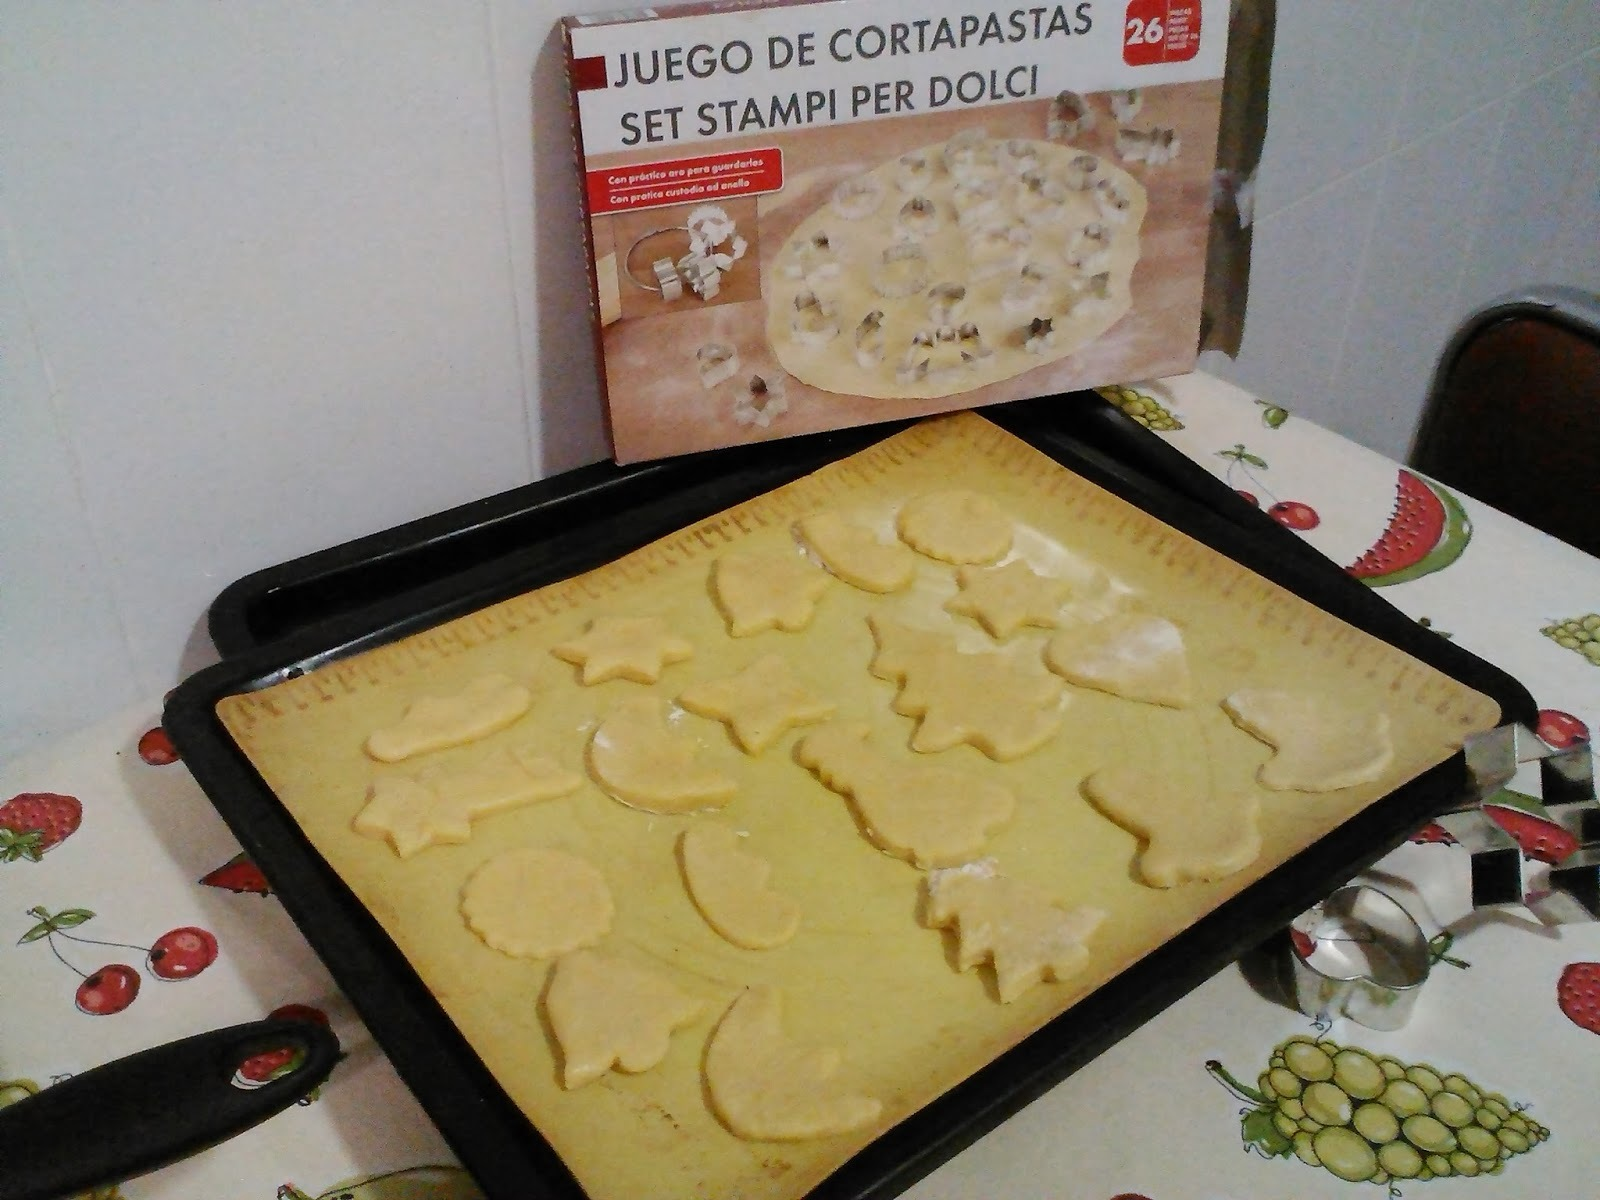 Galletas de mantequilla para glasear y decorar